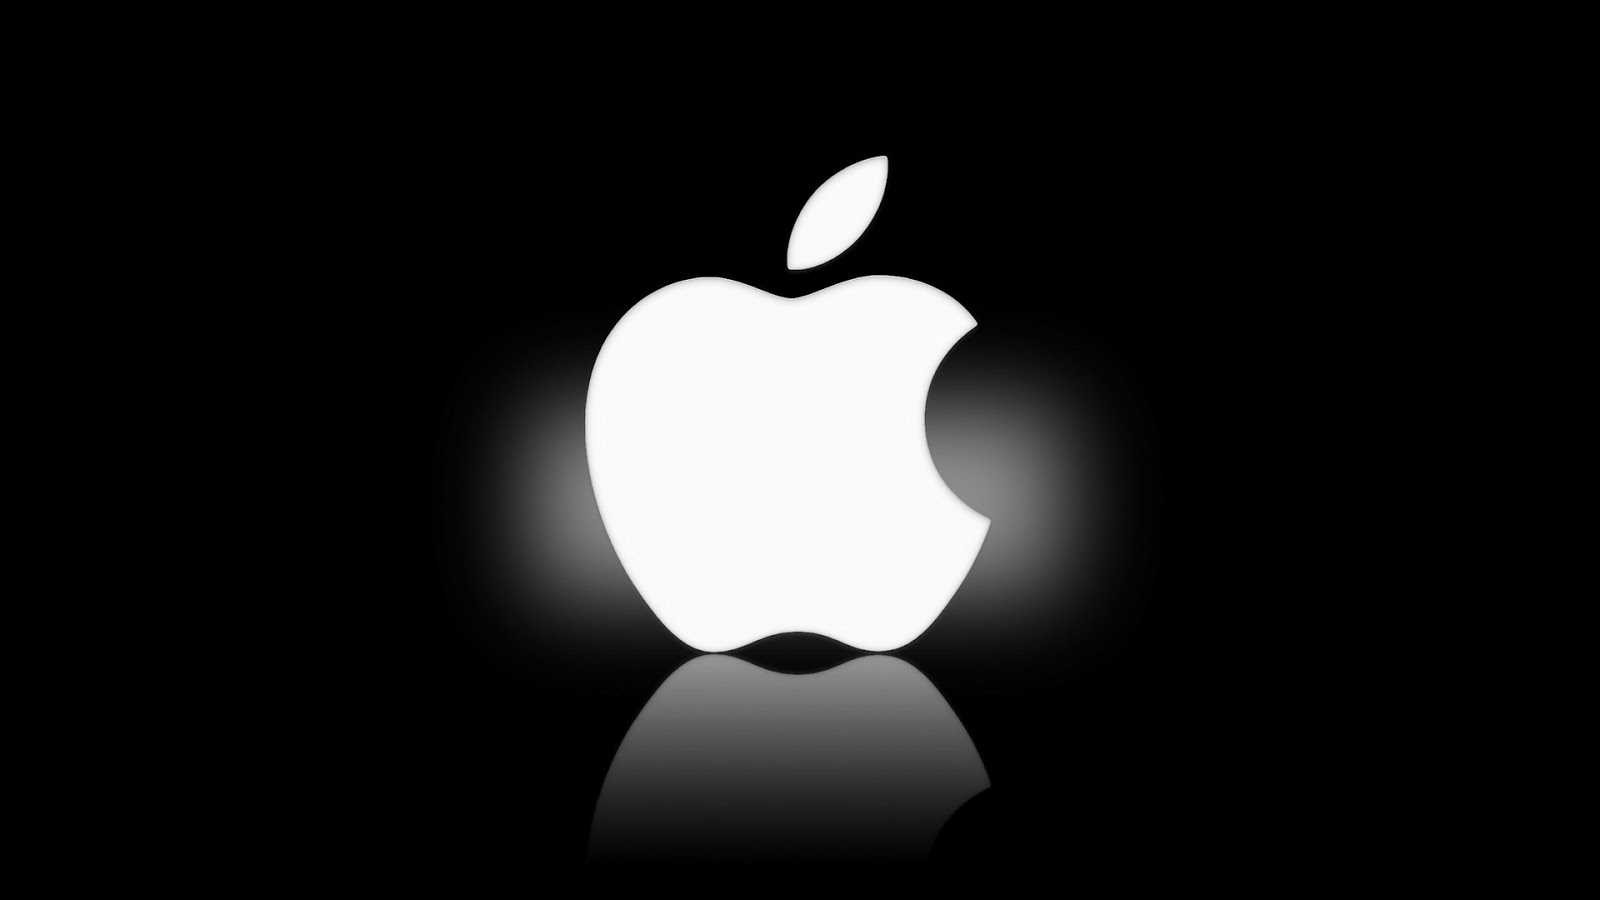 Apple Laptop Screen Wallpaper